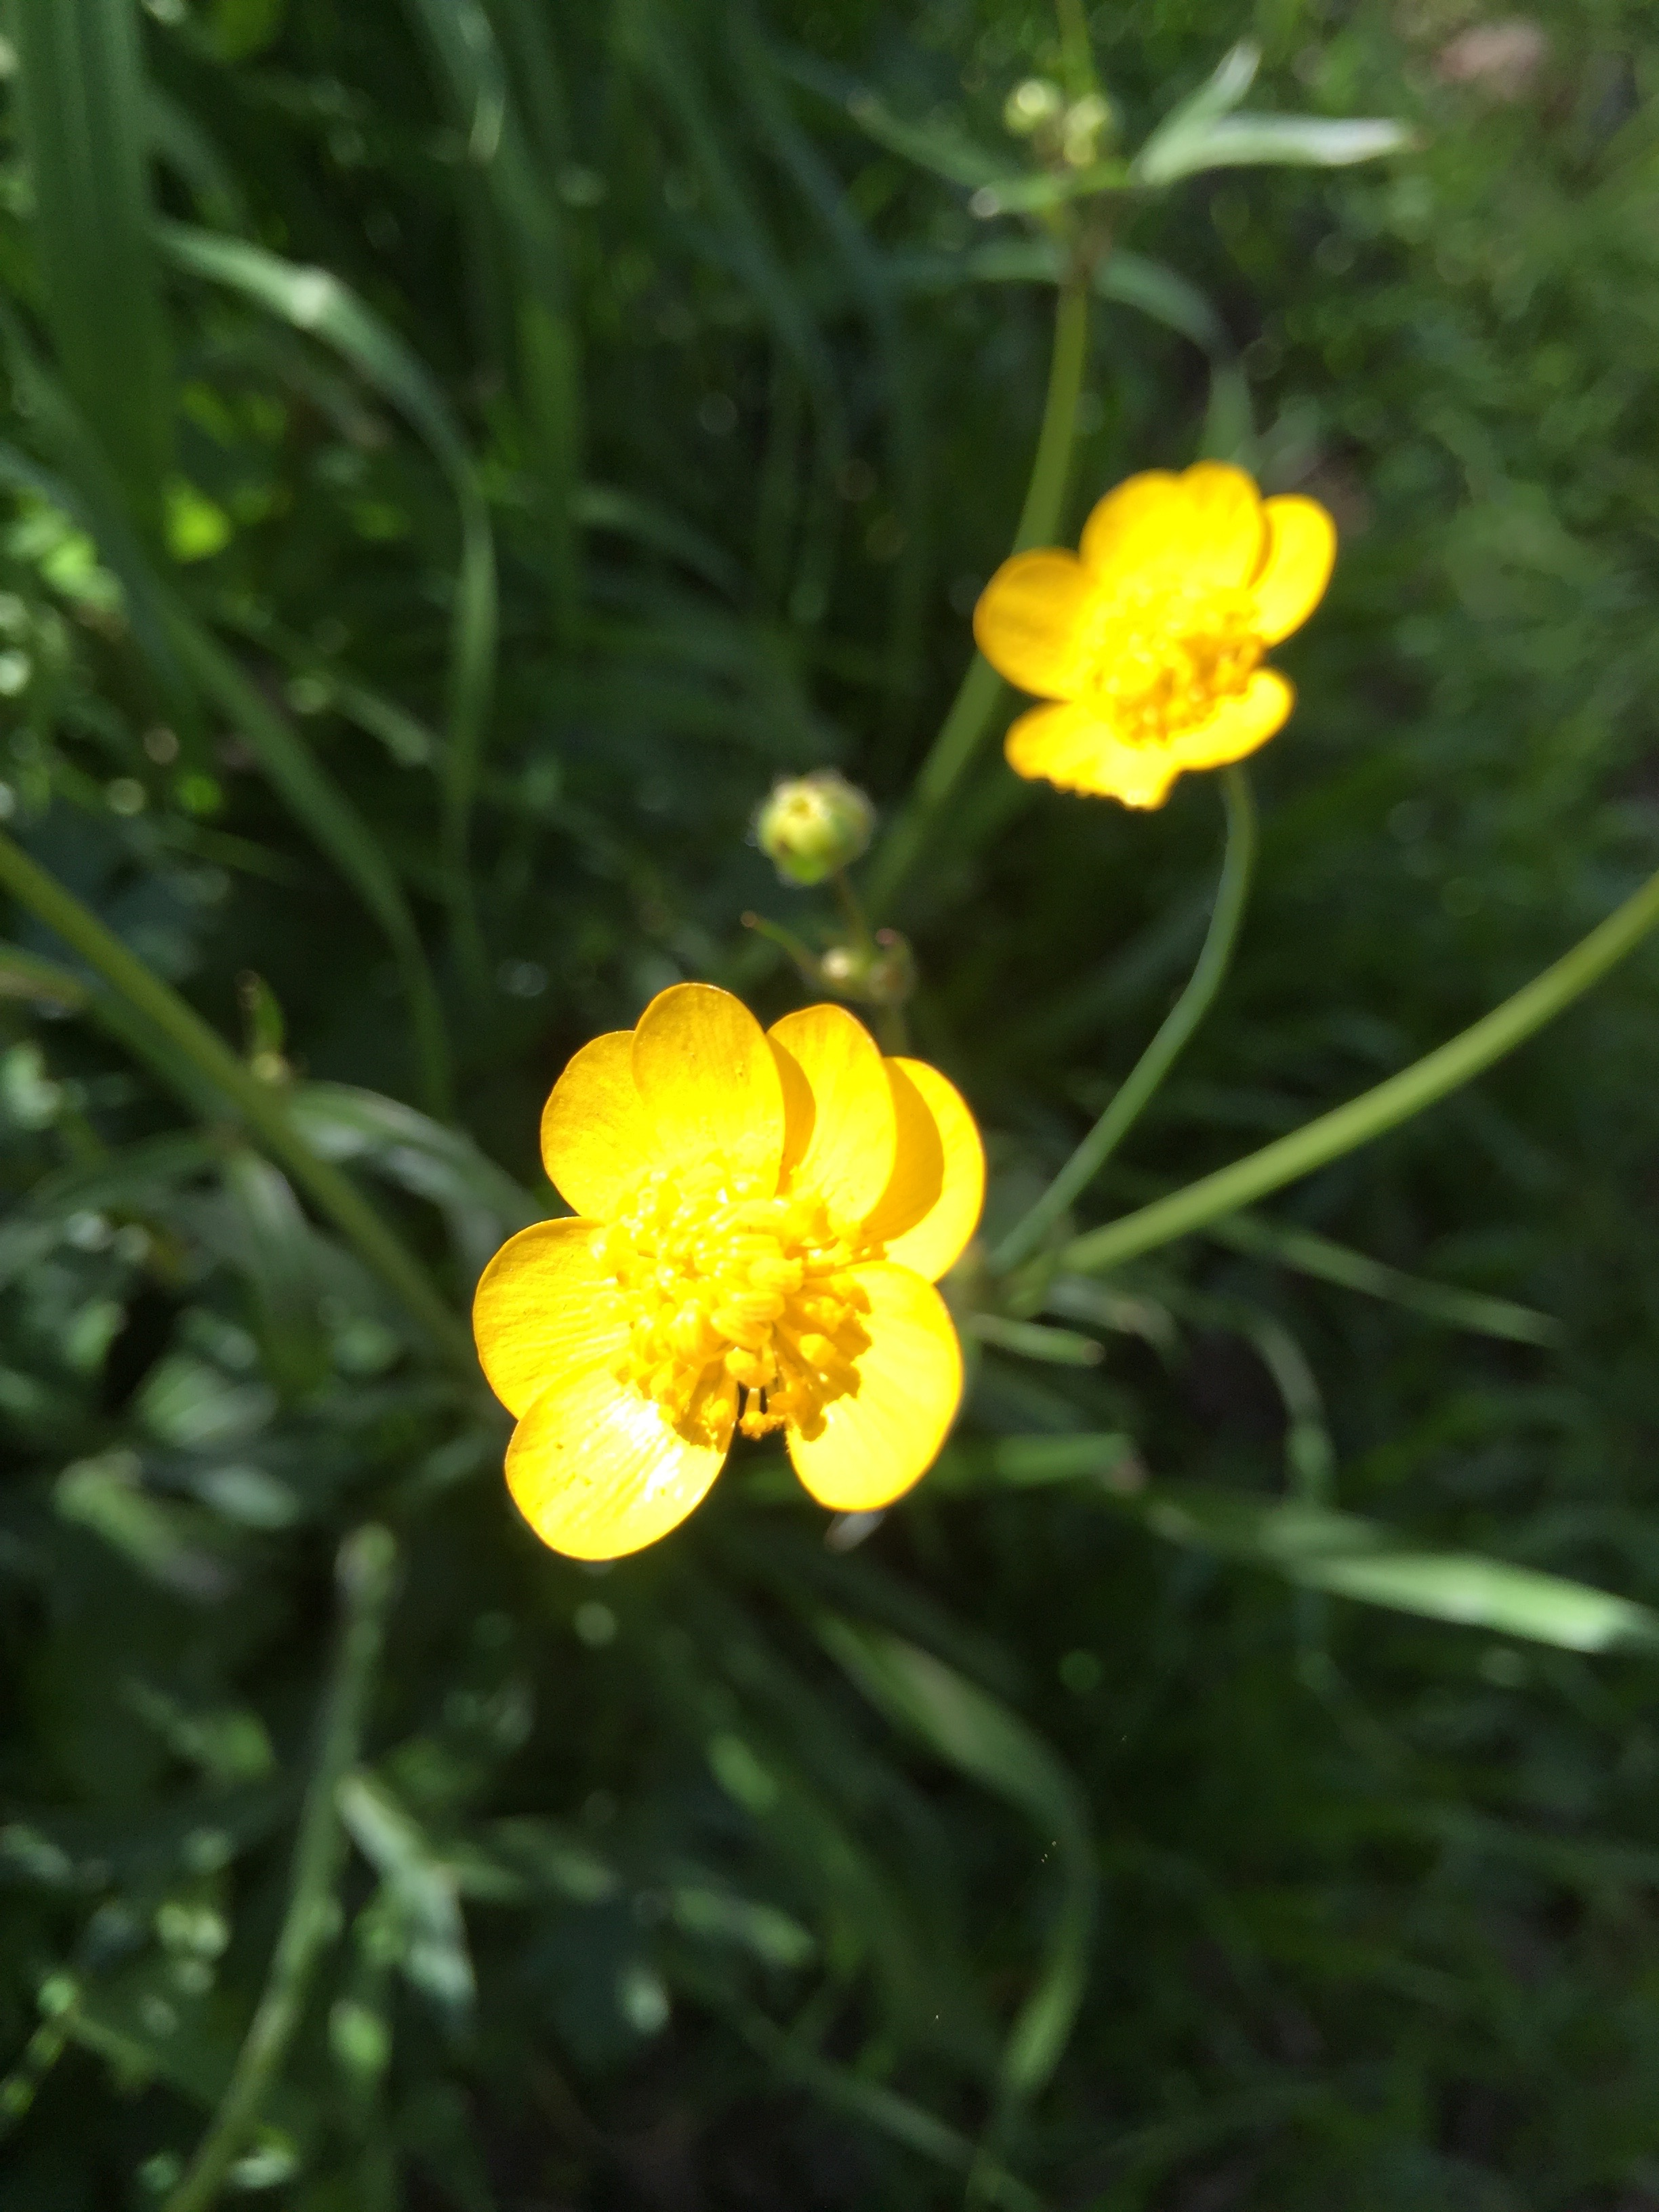 My first Buttercup sighting of the year, on a local trail